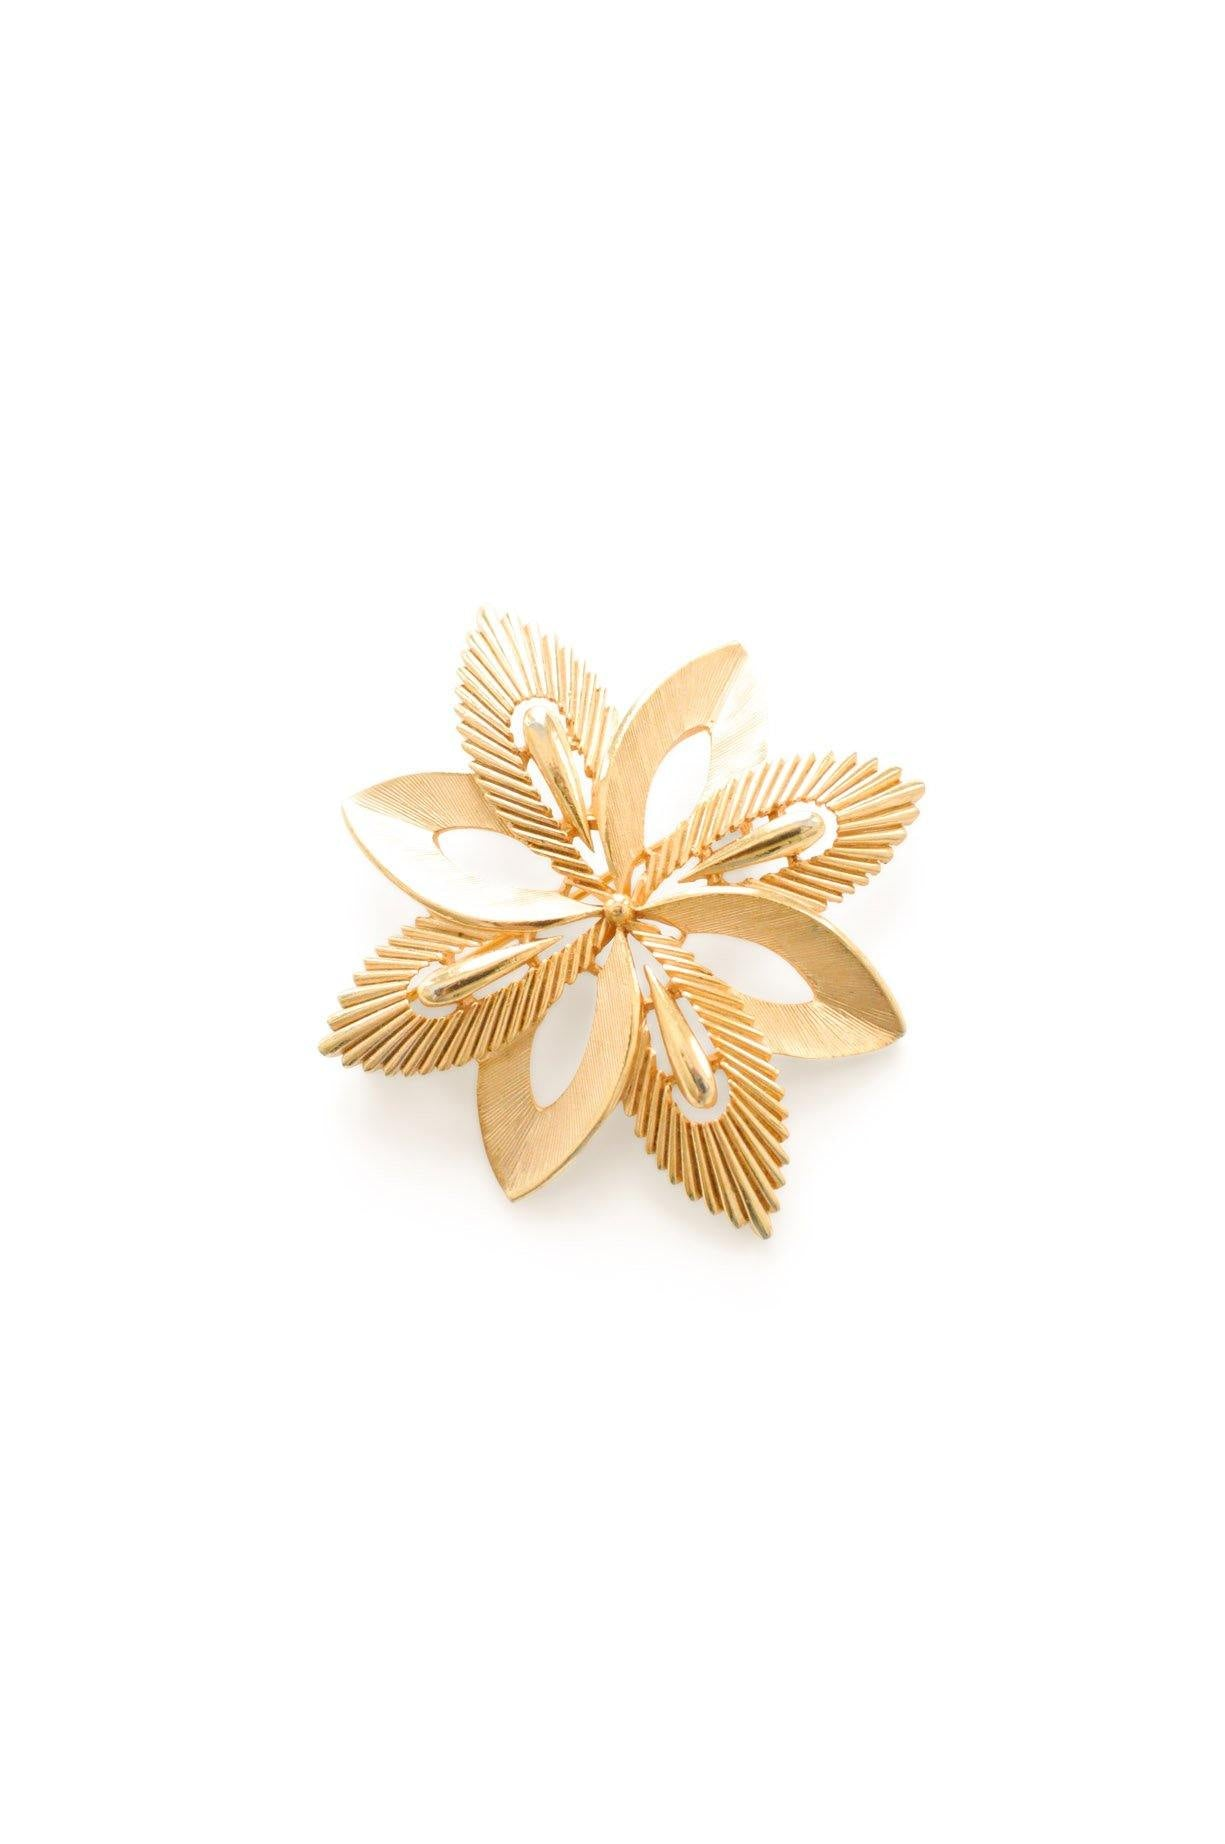 Trifari Gold Floral Brooch